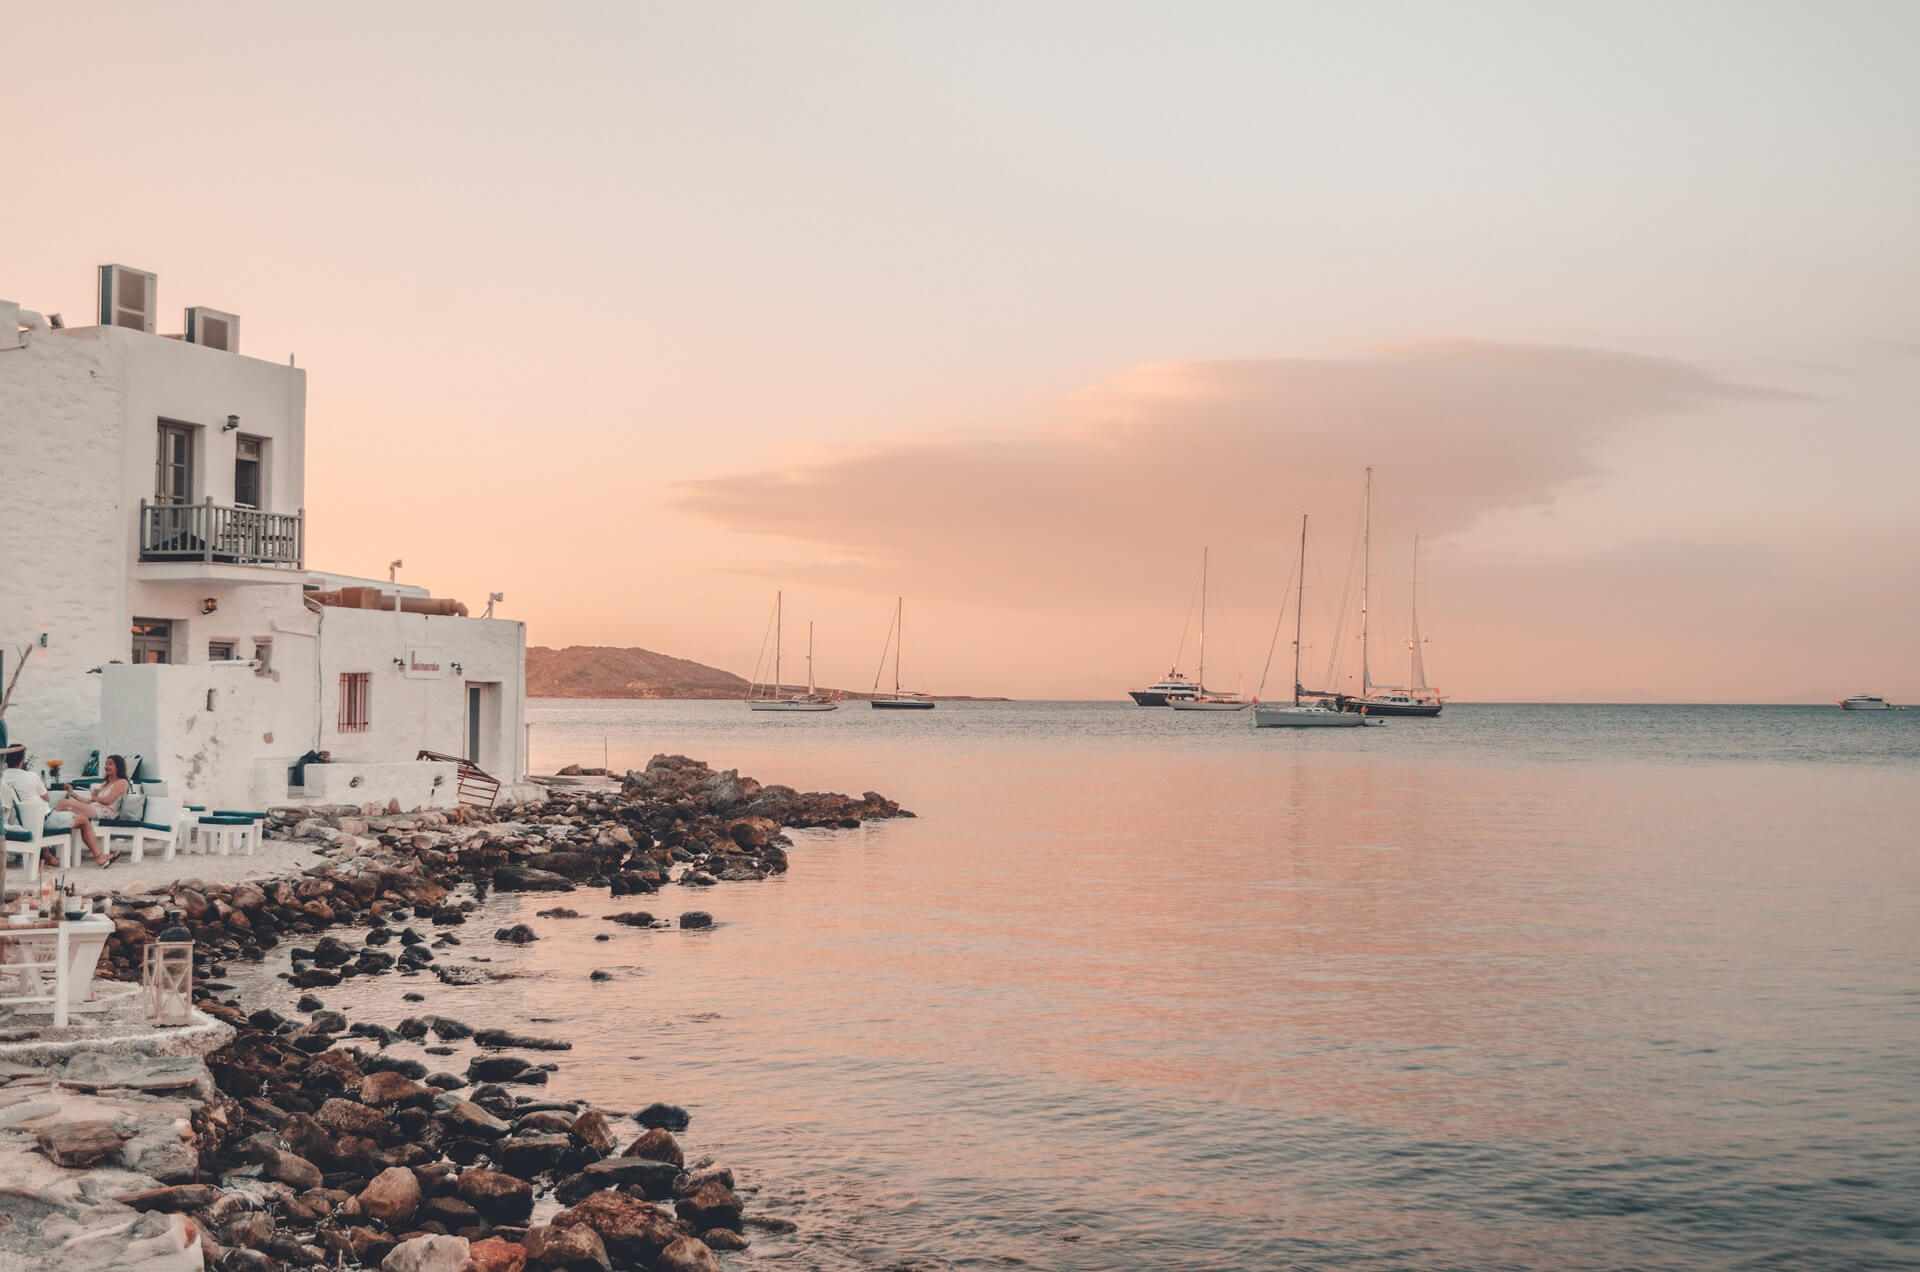 paros-central-greece-la-vie-en-blog-all-rights-reserved